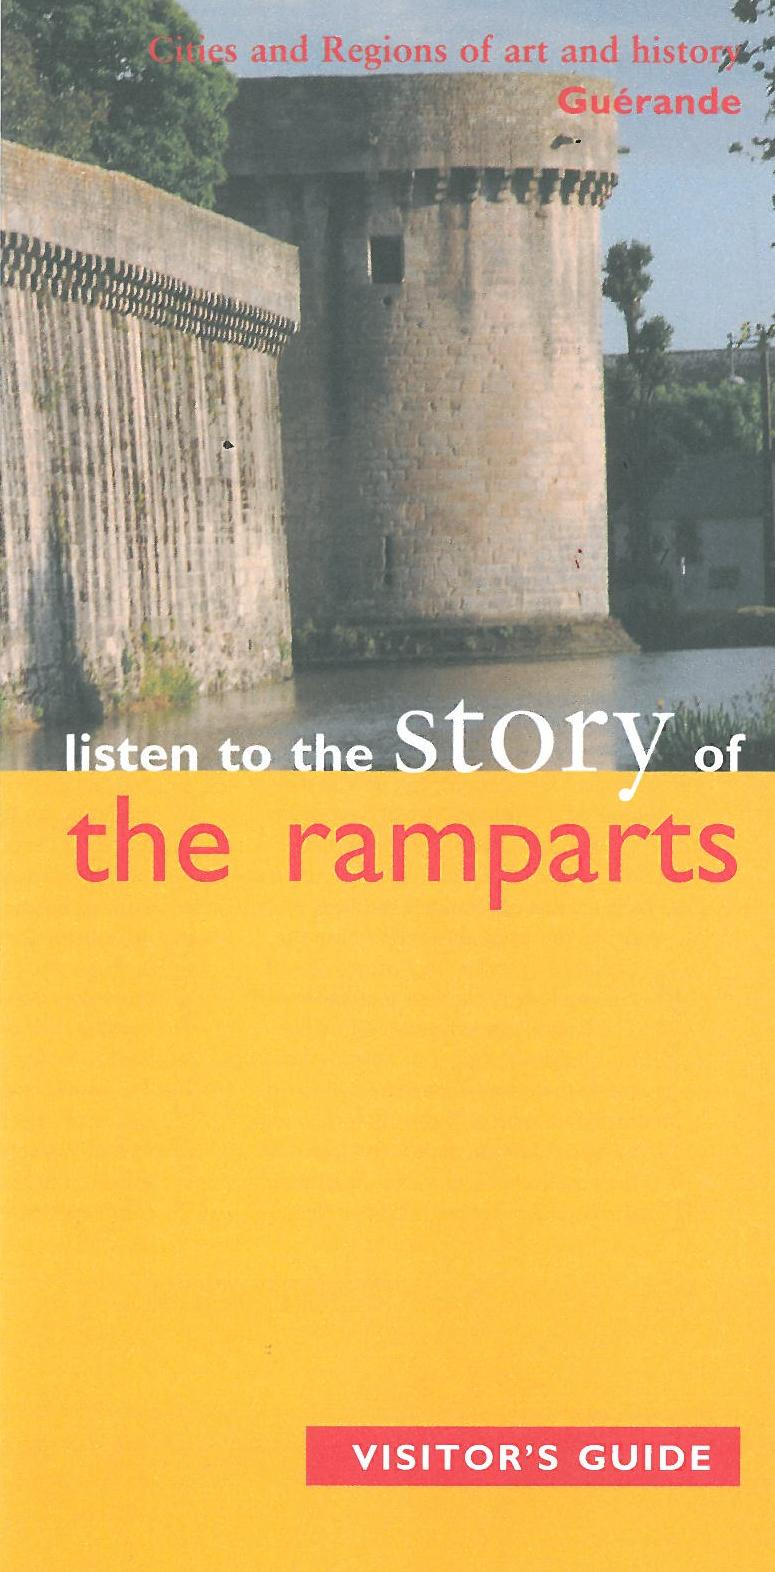 Listen to the story of the ramparts